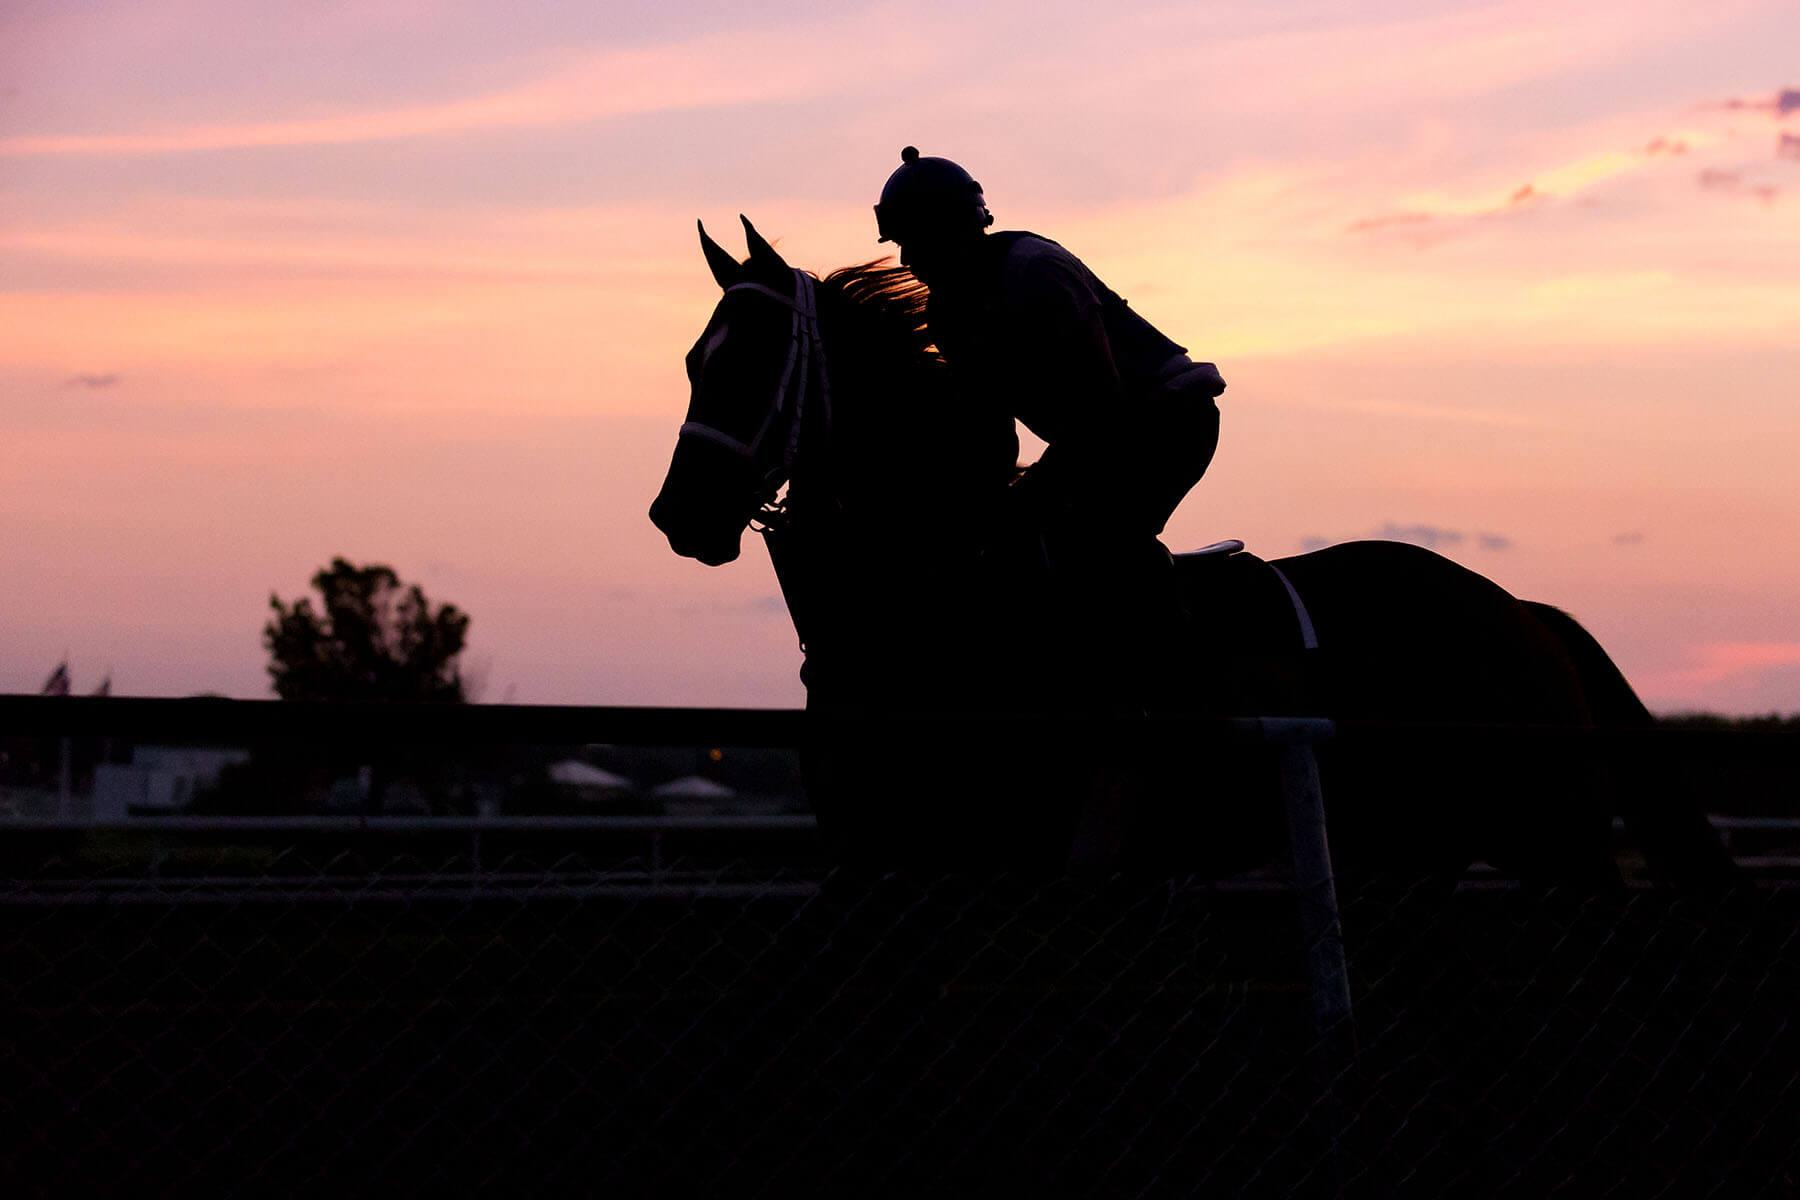 Horse and jockey riding in sunset